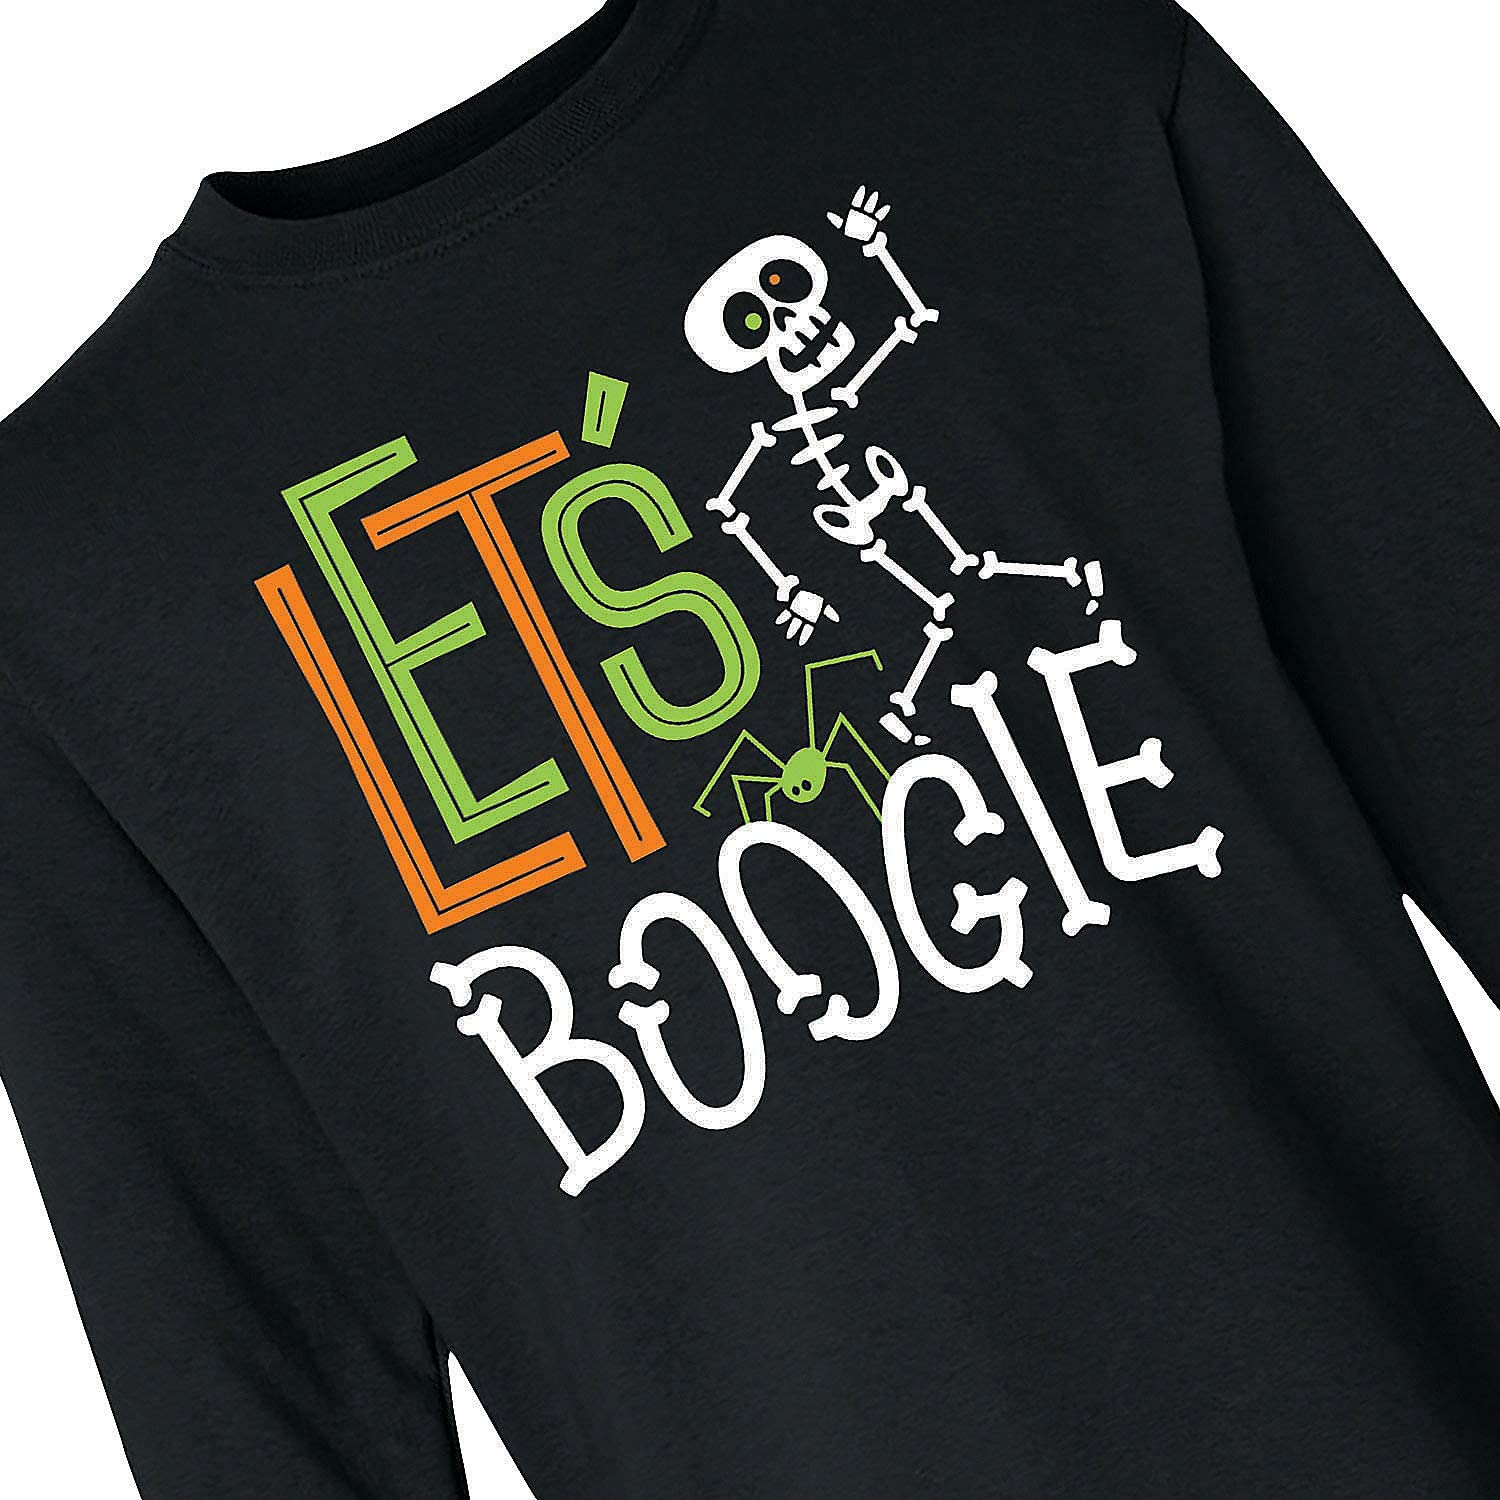 Let's Boogie Youth T-Shirt - Medium - Apparel Accessories - 1 Piece